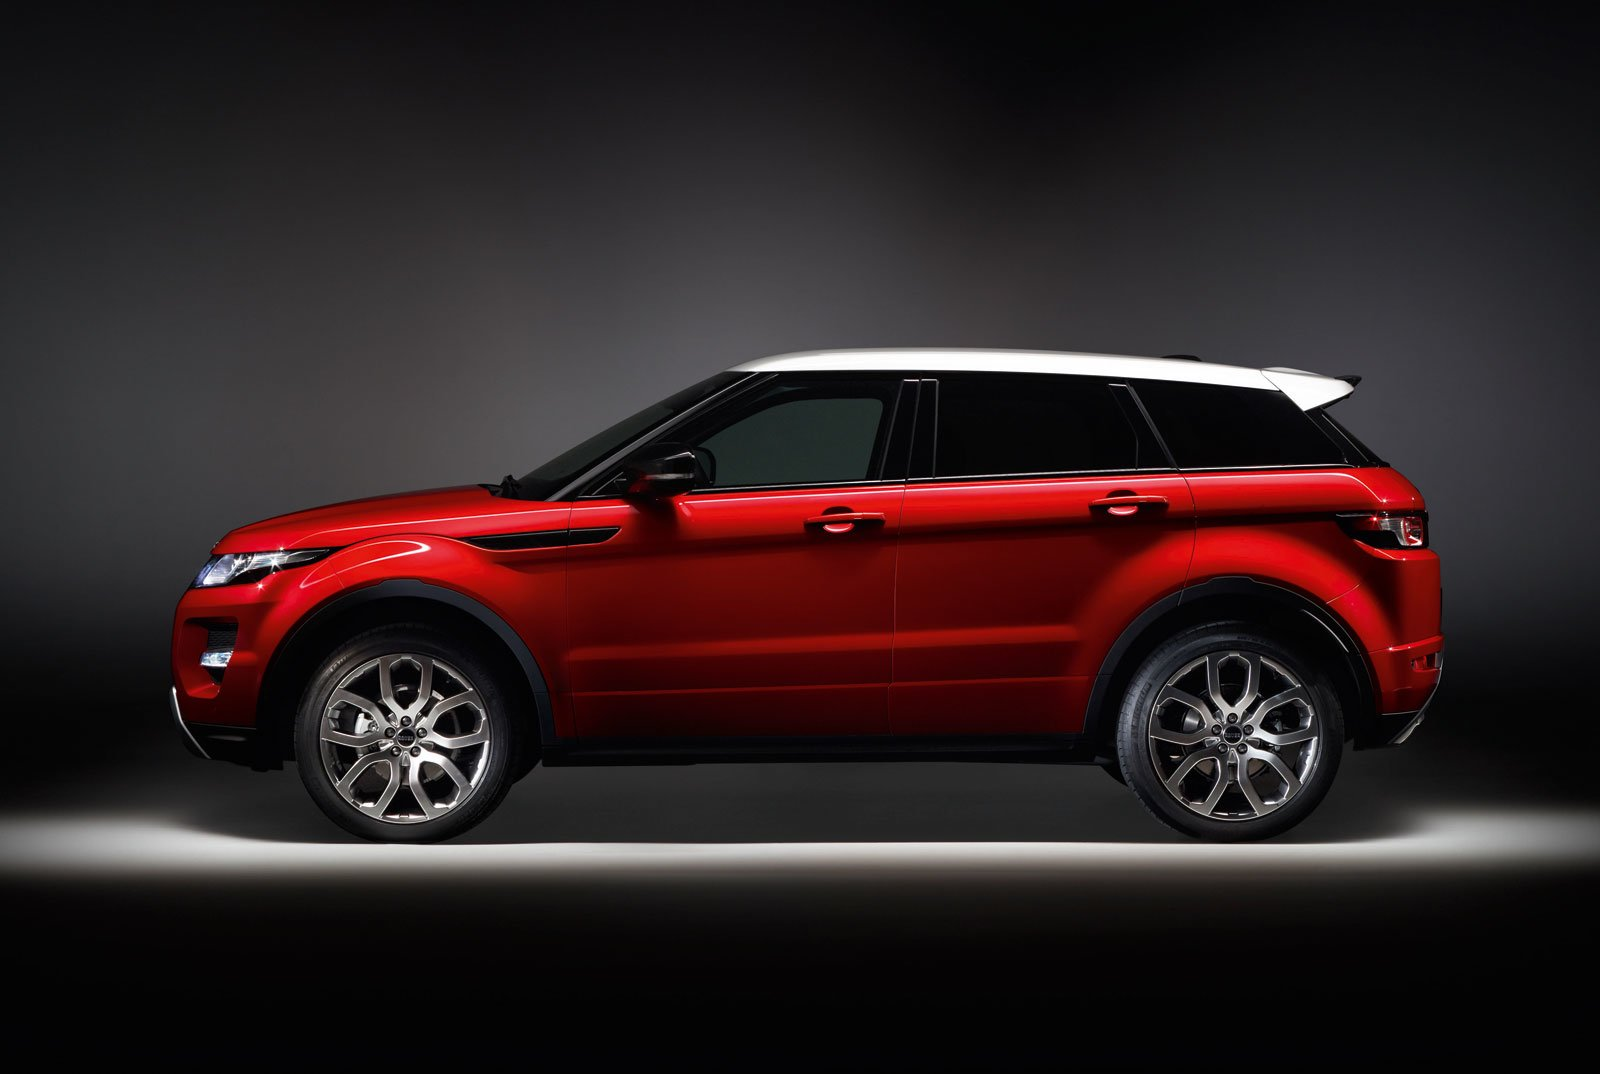 Latest New Autos Latest Cars Cars In 2012 Land Rover Range Rover Free Download